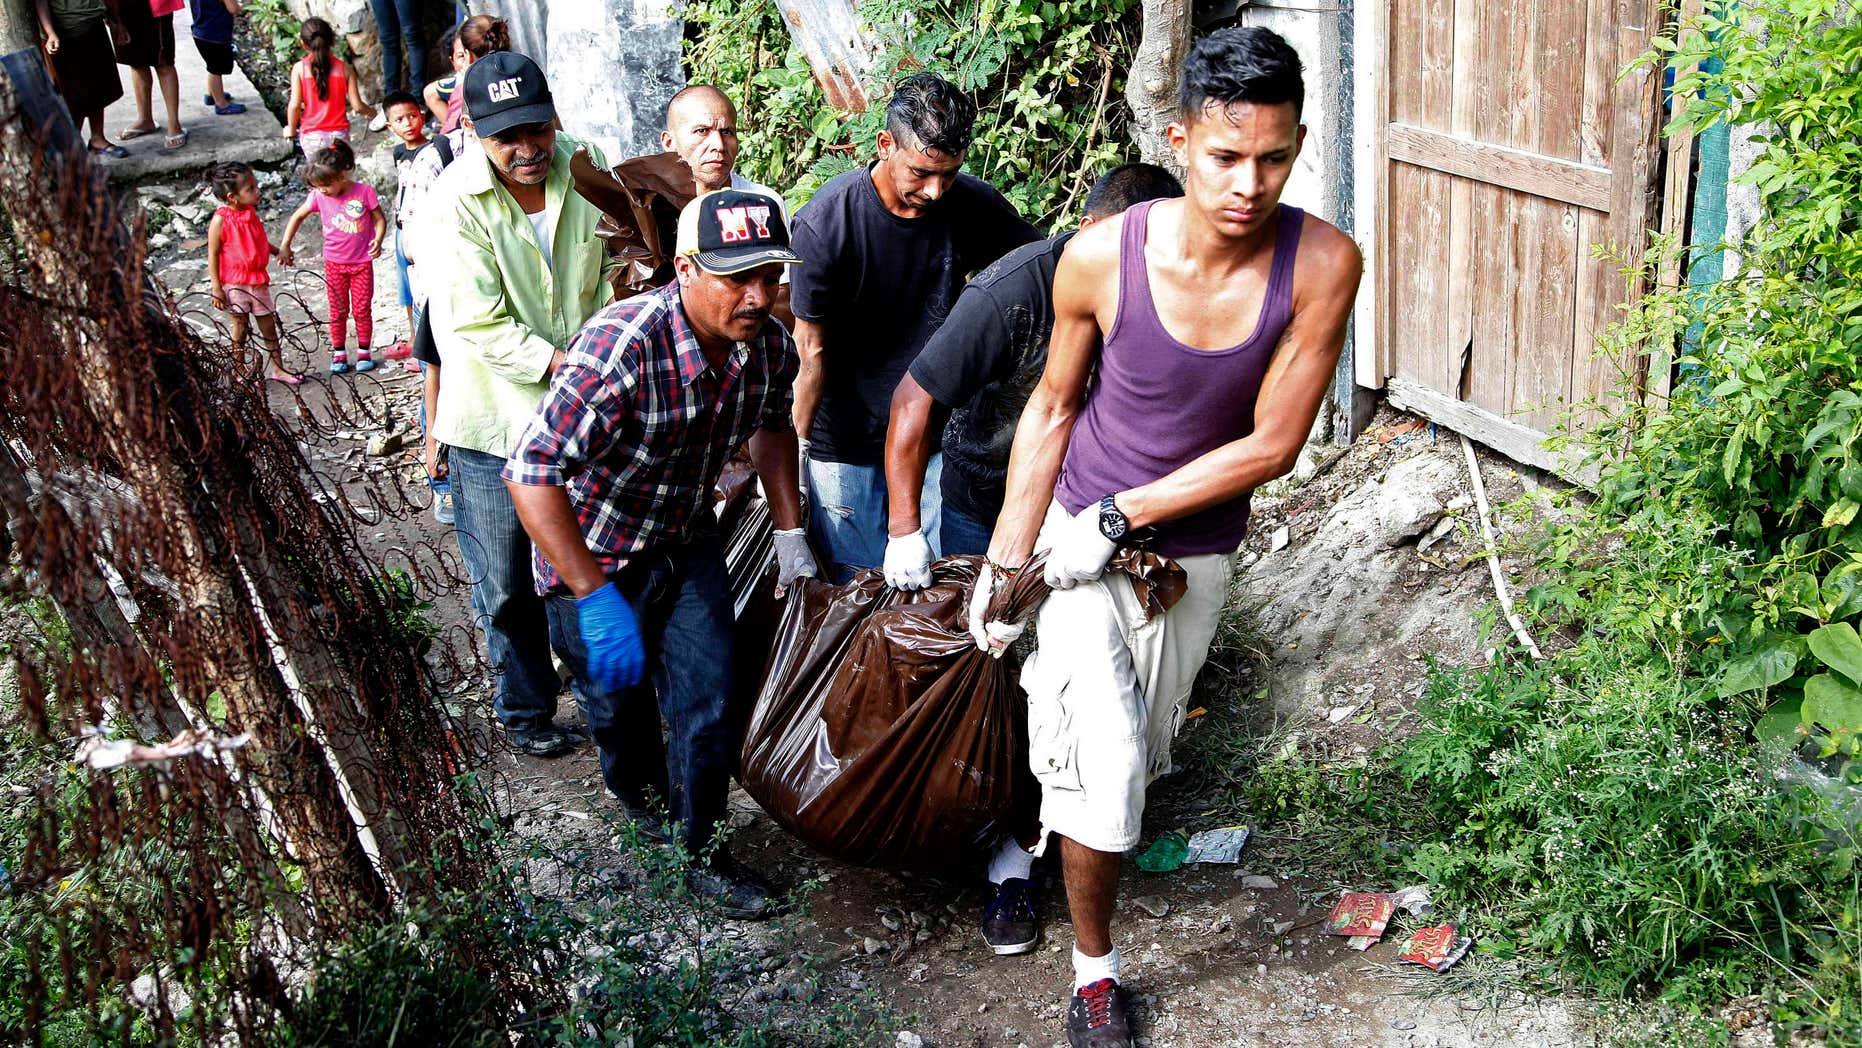 Nov. 25, 2015: A group of men help to remove bodies after armed young men pulled several men from their homes and executed them at a low income neighborhood in the capital city of Tegucigalpa, Honduras.